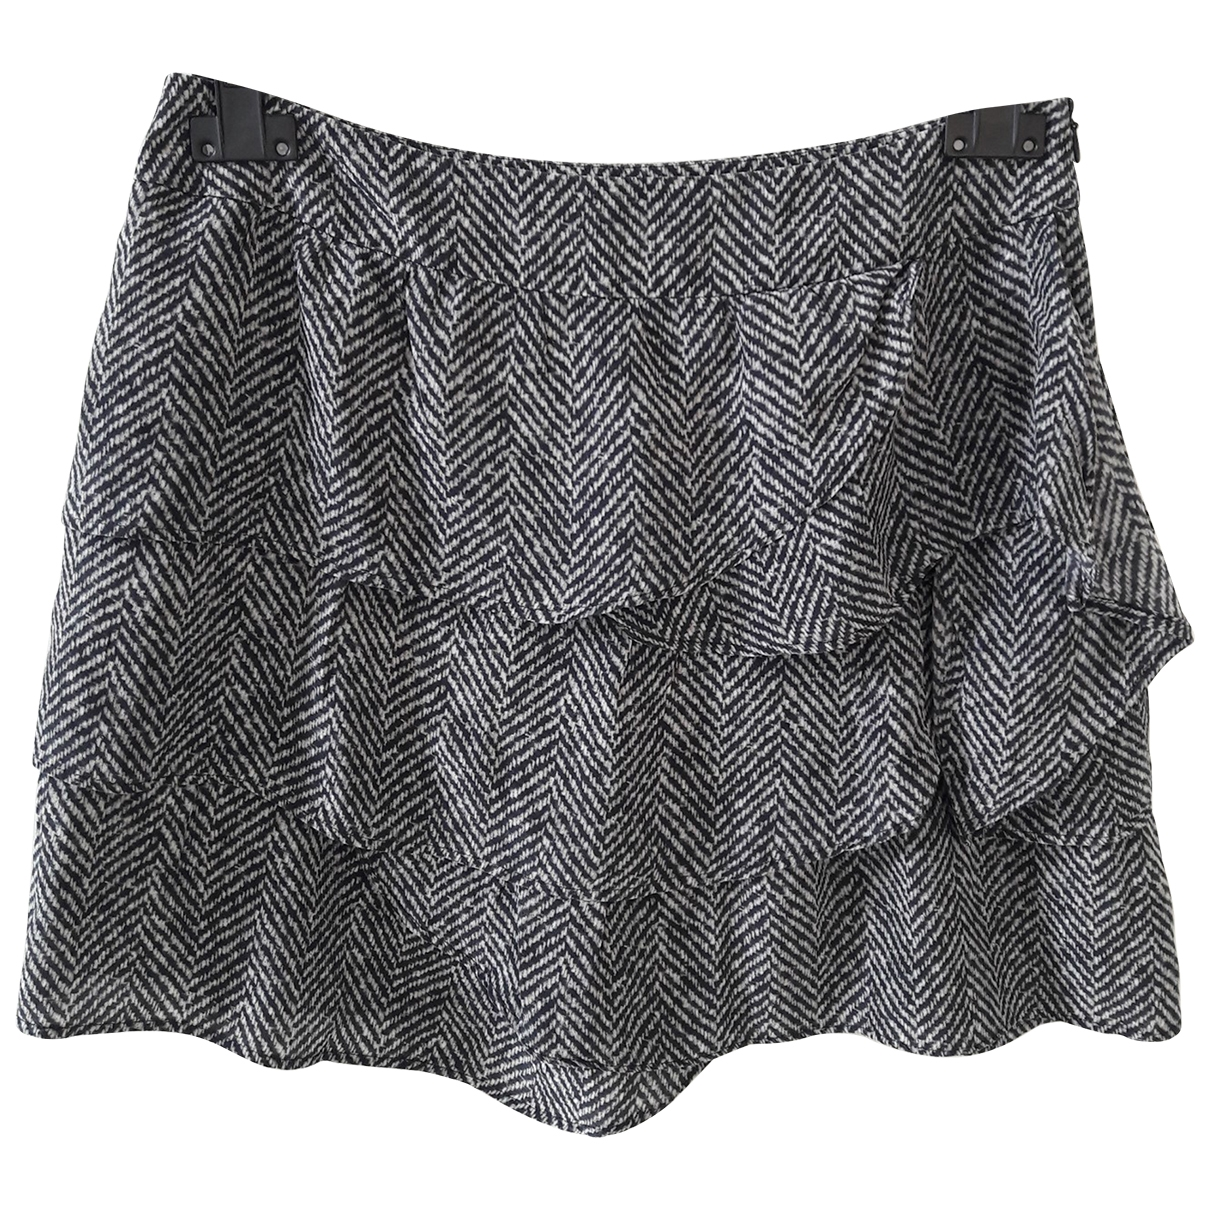 Max & Co \N Anthracite Silk skirt for Women 10 UK